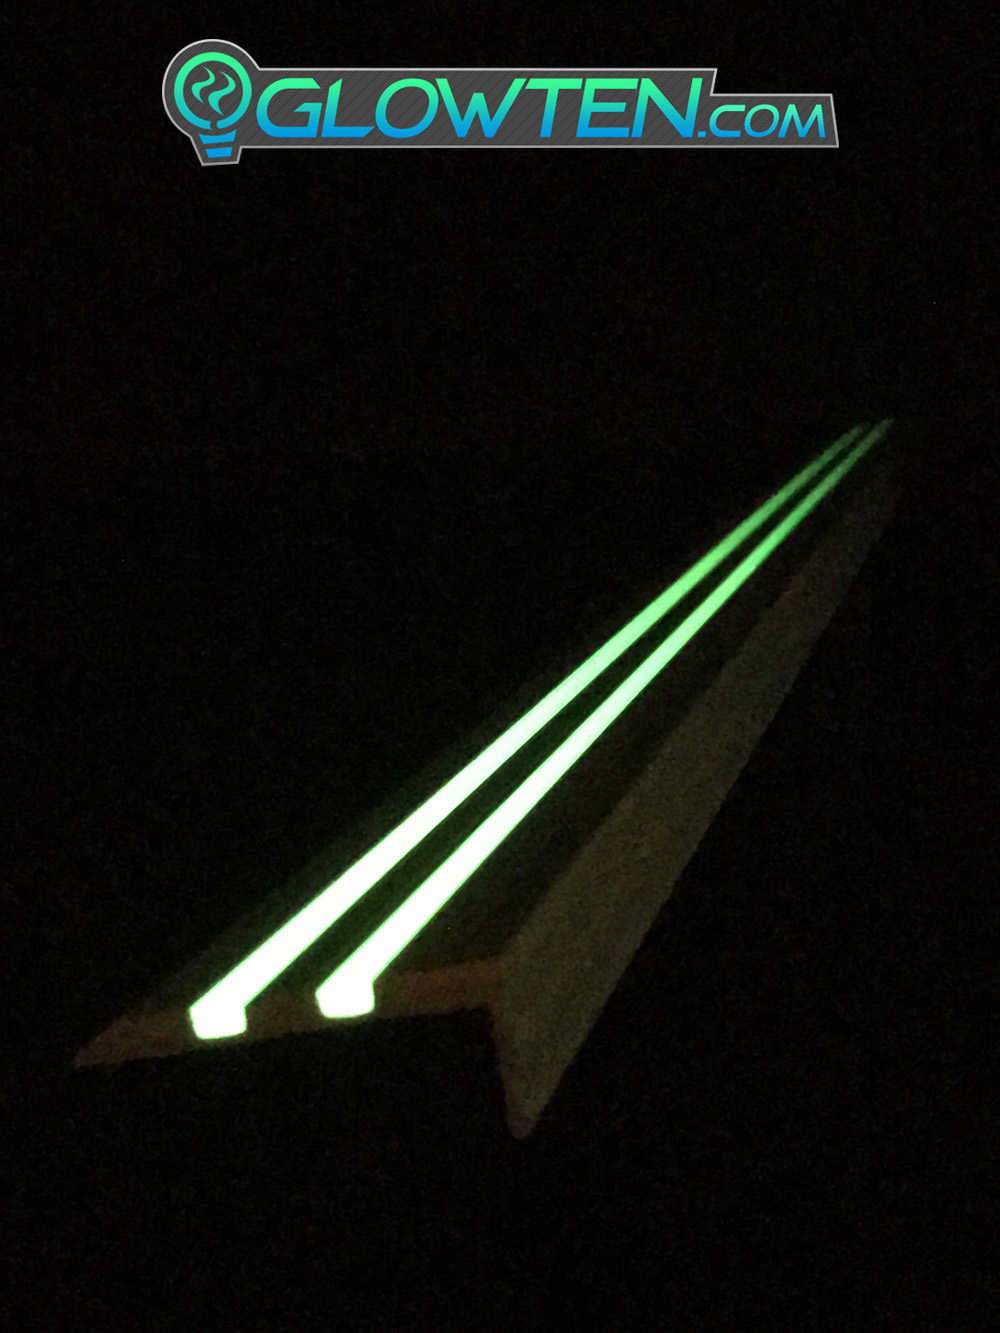 GLOWTEN.com - ANTI-SLIP STAIRS TREAD 2-BANDS NOSING GLOW IN THE DARK LUMINOUS SAFETY STRIP NON-SKID SEE BETTER AT NIGHT PREVENT FALLING GRIP STRENGTH FOR MINIMUM 31.5